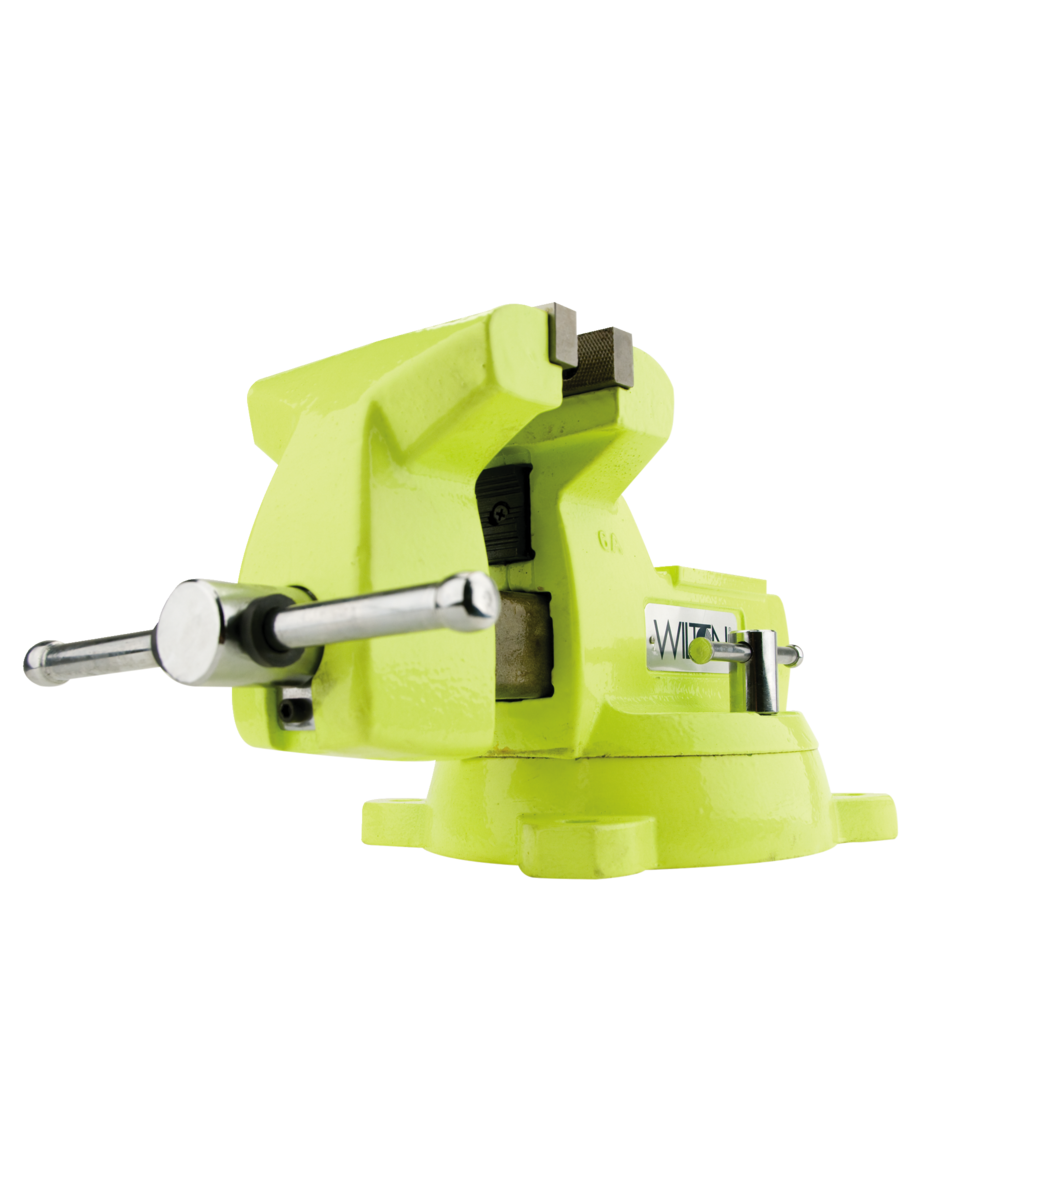 "Manual: 1560, High-Visibility Safety 6"" Vise with Swivel Base"